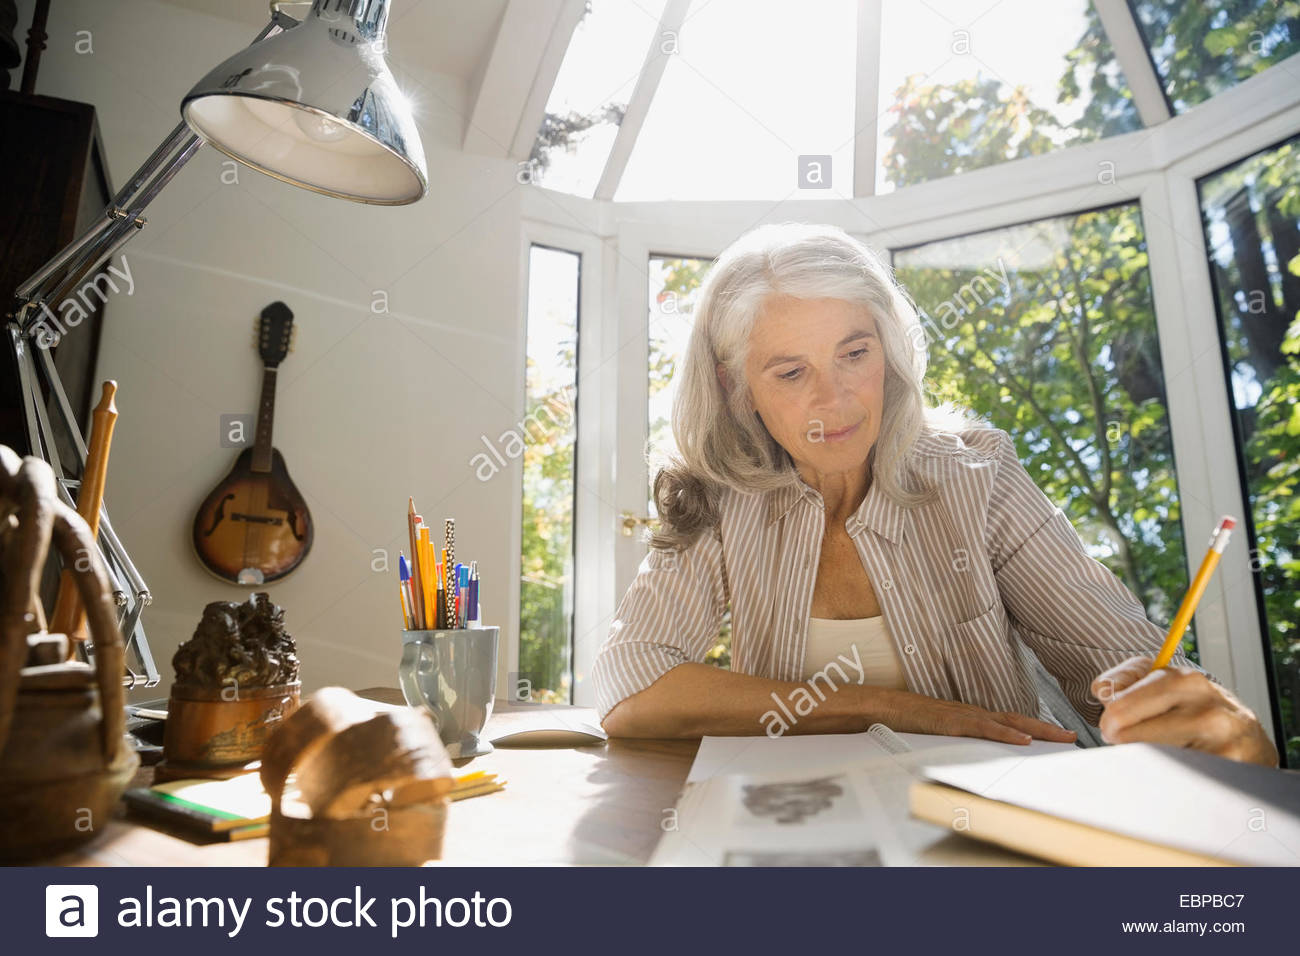 Senior woman writing in home office - Stock Image